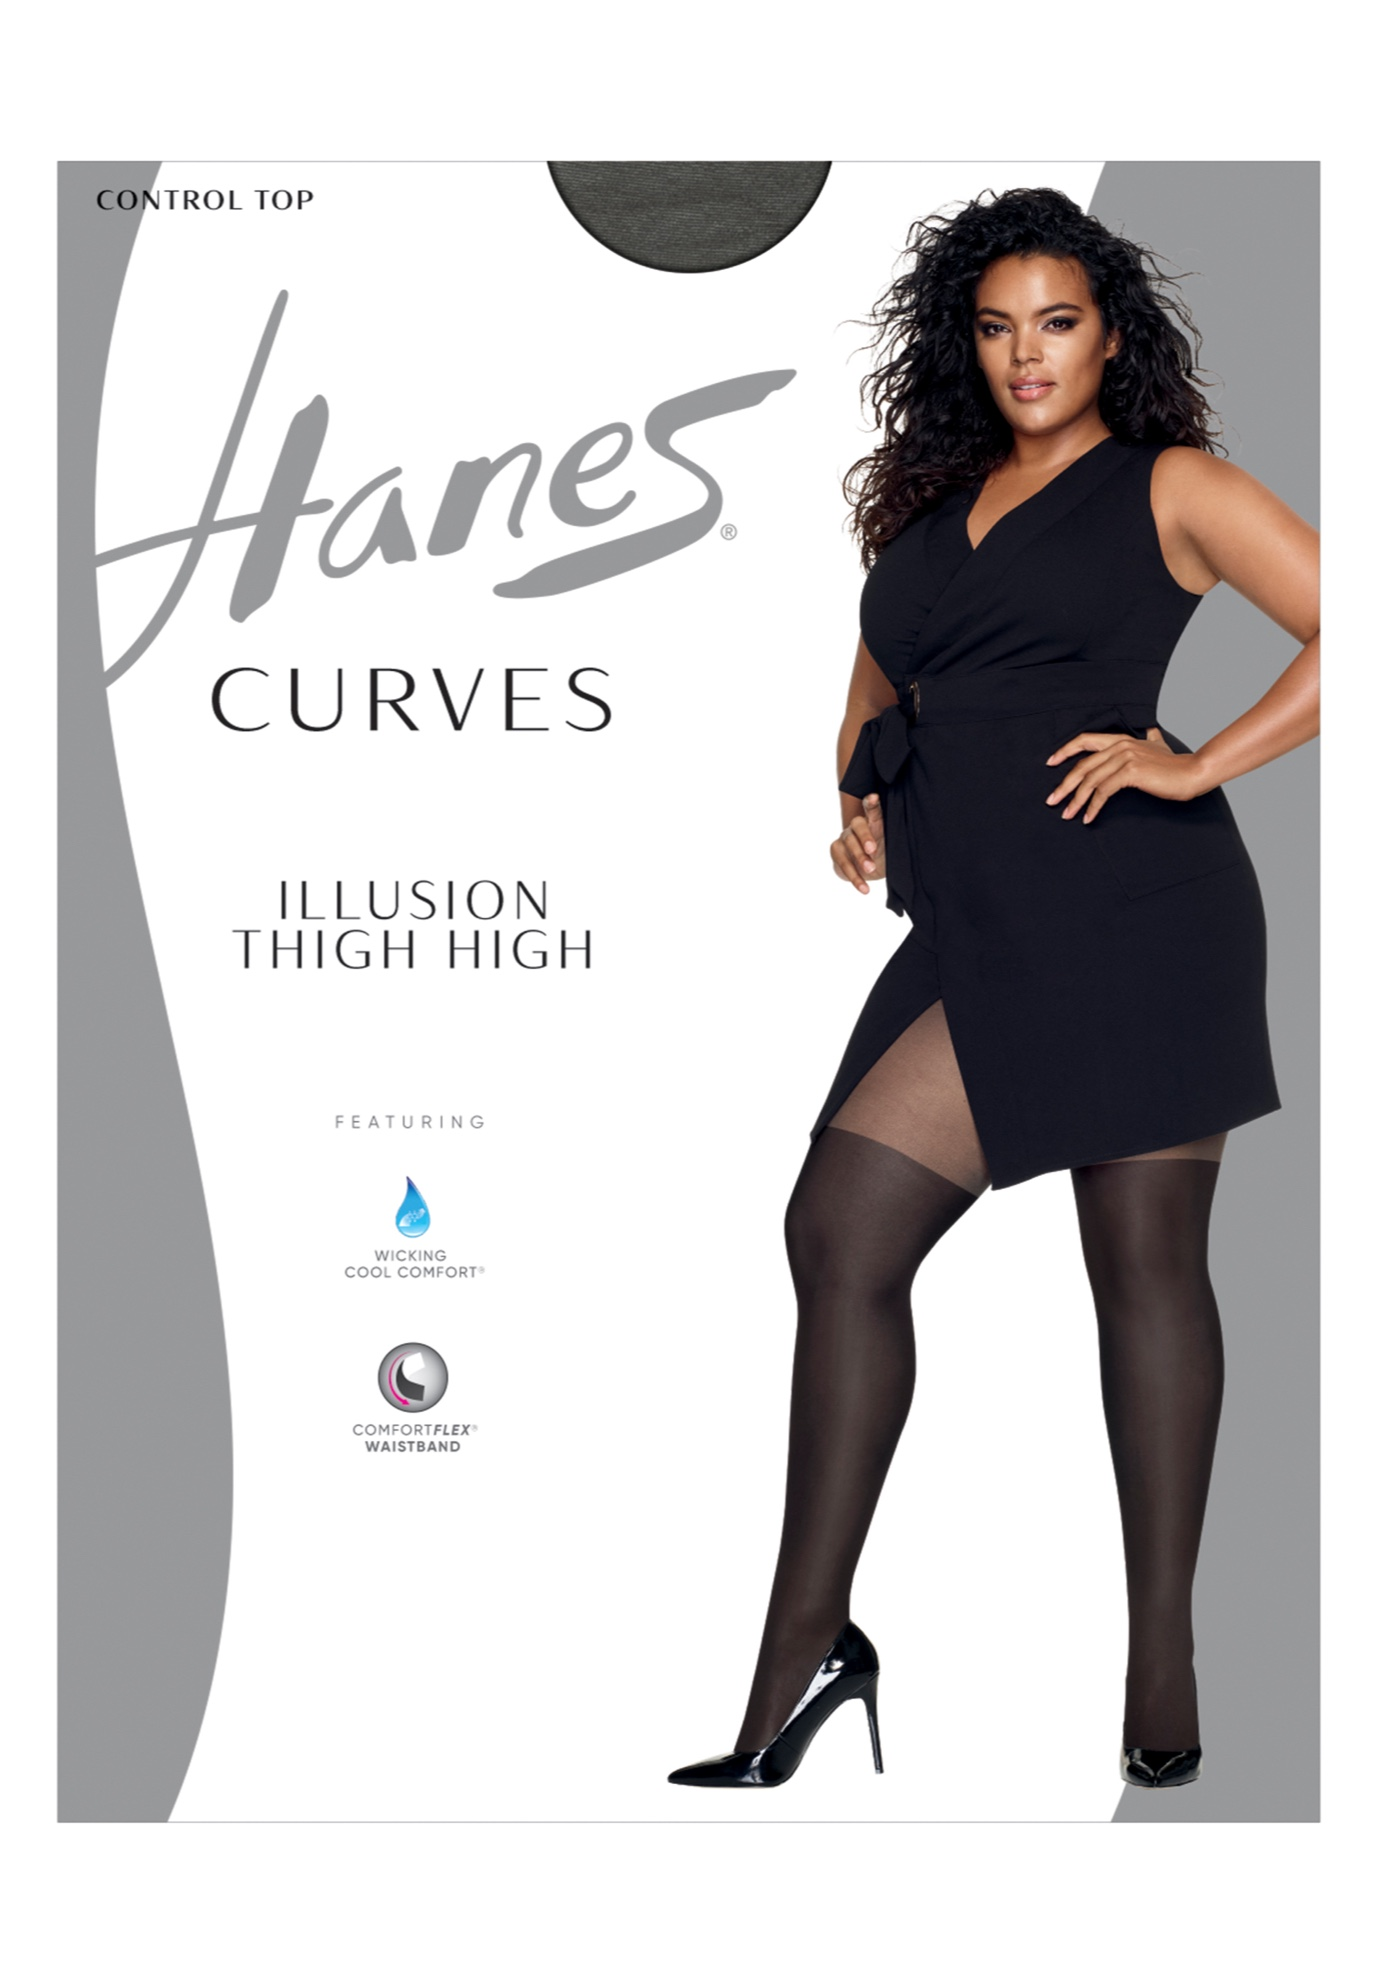 Hanes Curves Illusion Thigh Highs,